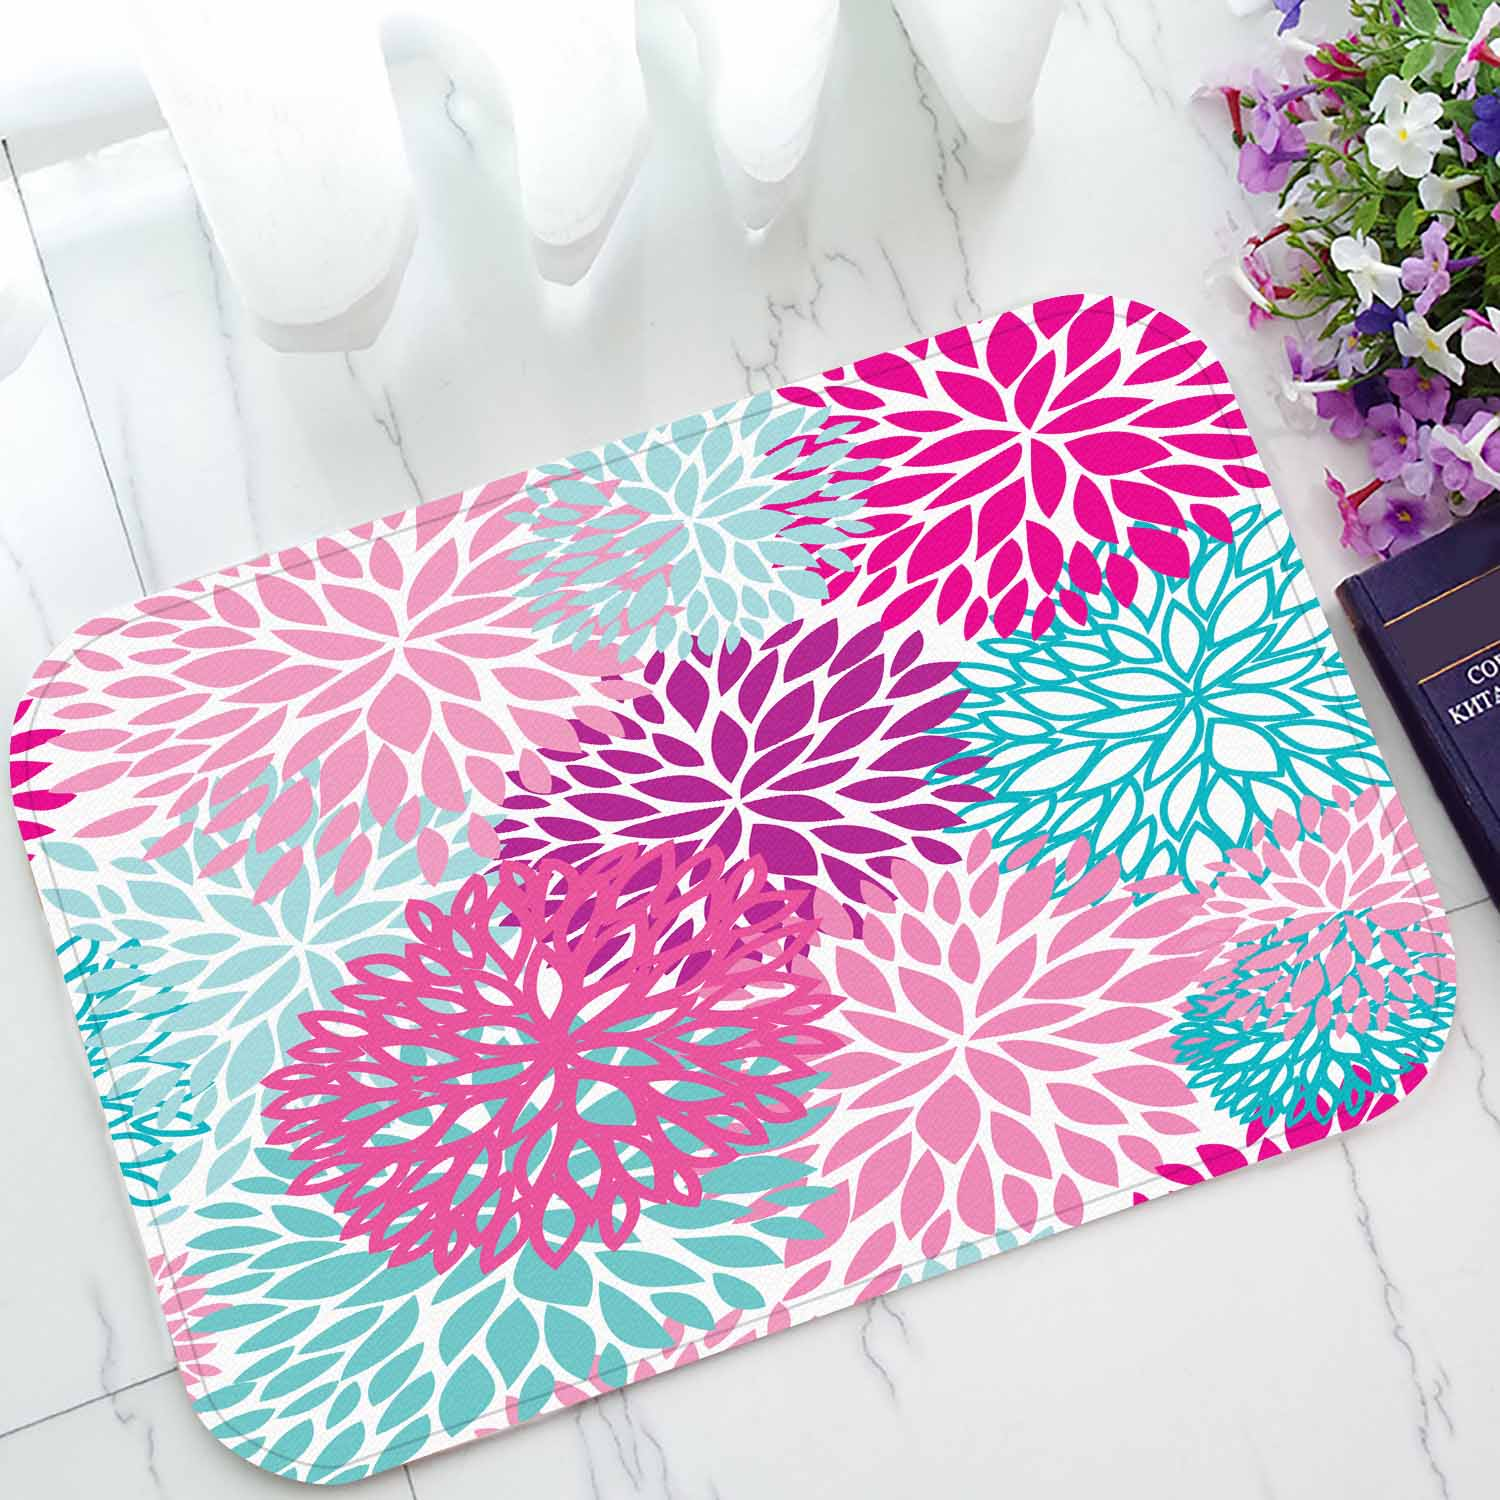 Picture of: Pkqwtm Bright Floral Pattern Home Decor Floor Mat Area Rug Doormat Size 15 7×23 6 Inches Walmart Com Walmart Com